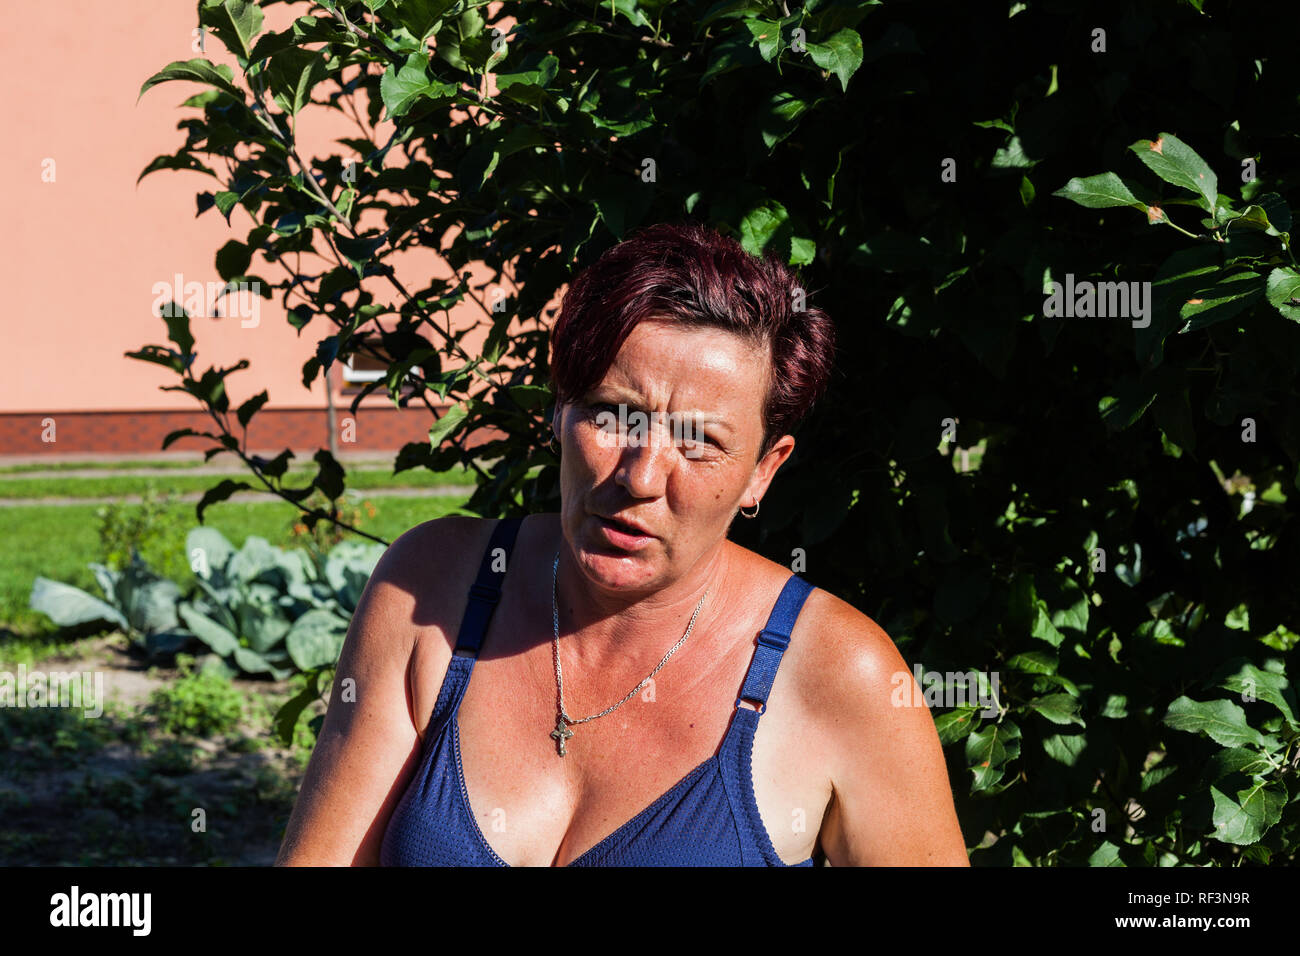 Focused view of a woman looking fiercely in one sunny day. The brunet housewife wearing brassiere behind the tree. Summer fashion style. Typical hot d - Stock Image